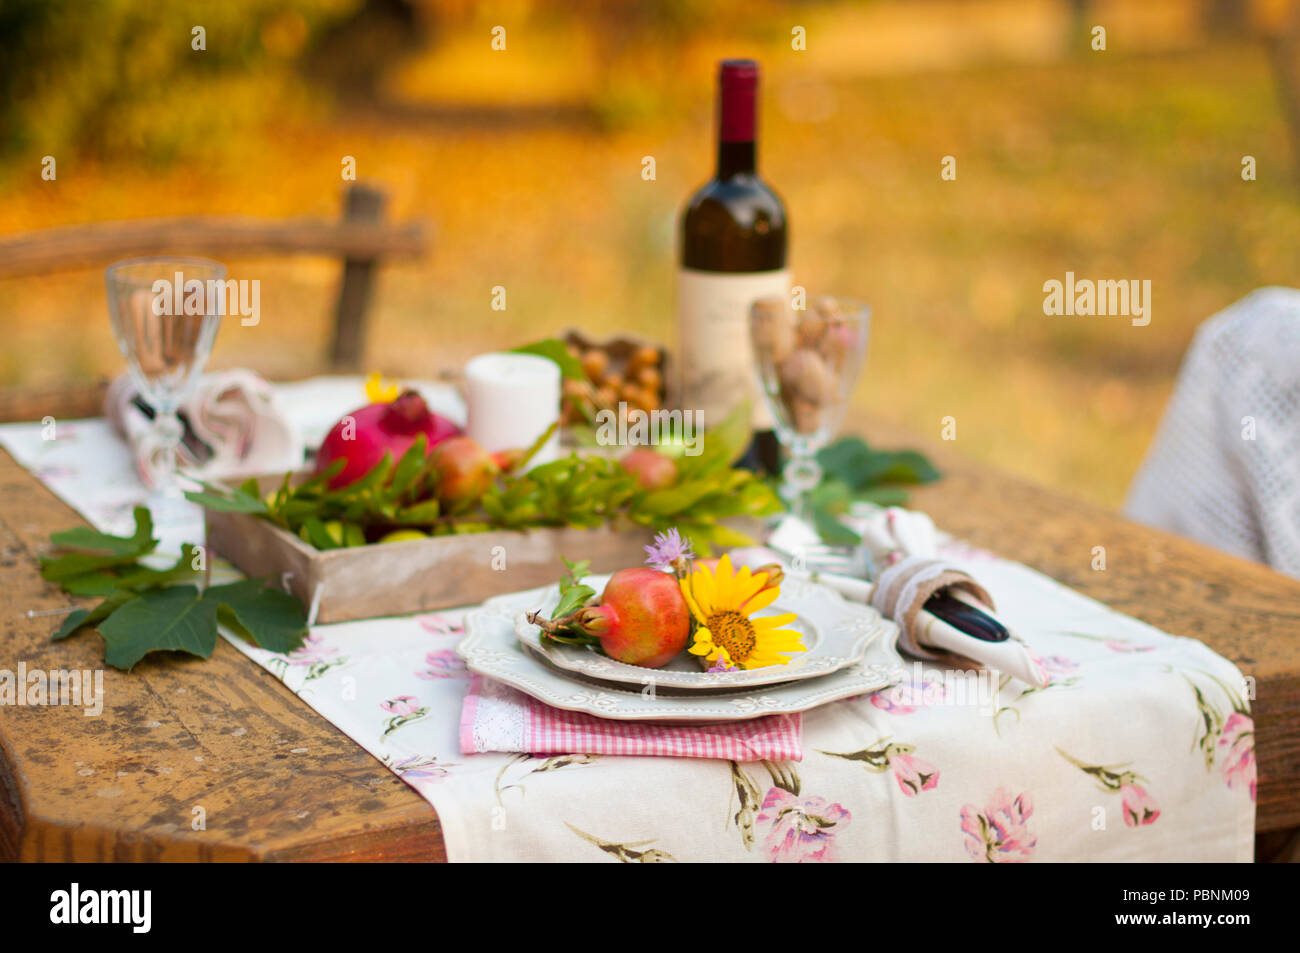 Romantic dinner in the autumn garden, table setting for a nice dinner. Wine, fruit, pomegranate and flowers. Picnic in the open air. - Stock Image